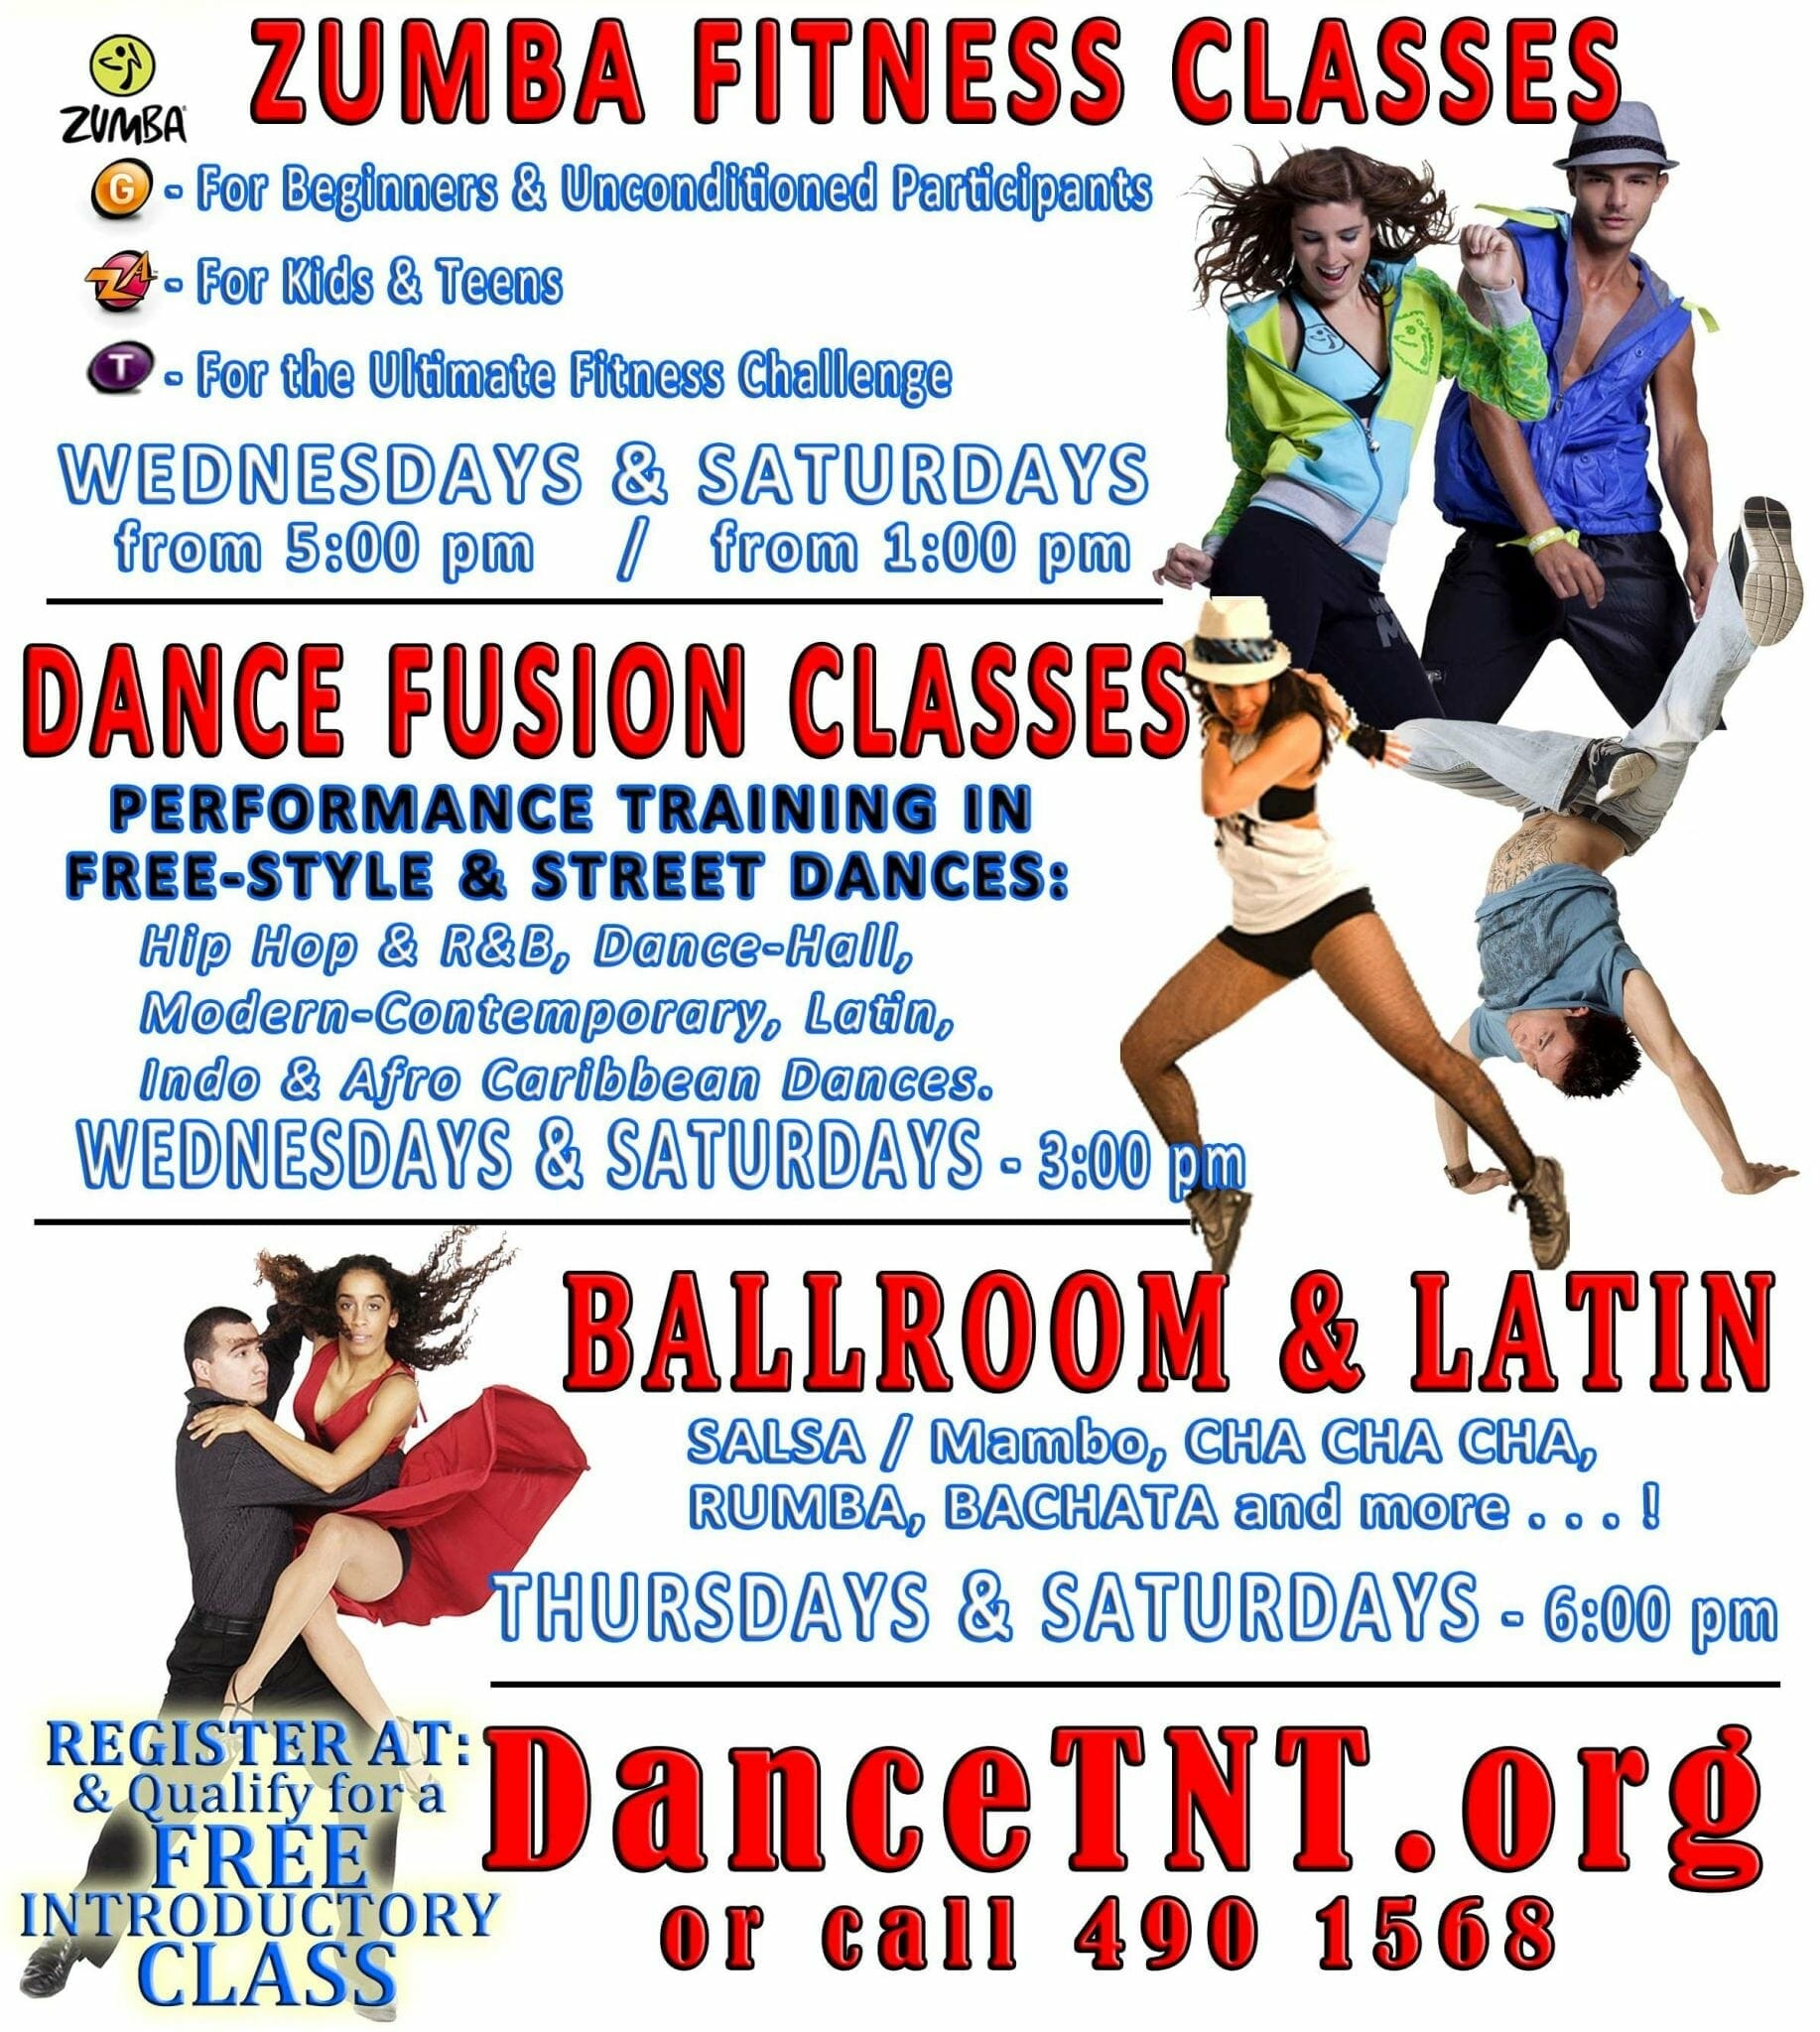 Dance-Fusion, Free-Style, Latin & Shape-Fit DancerSize Classes